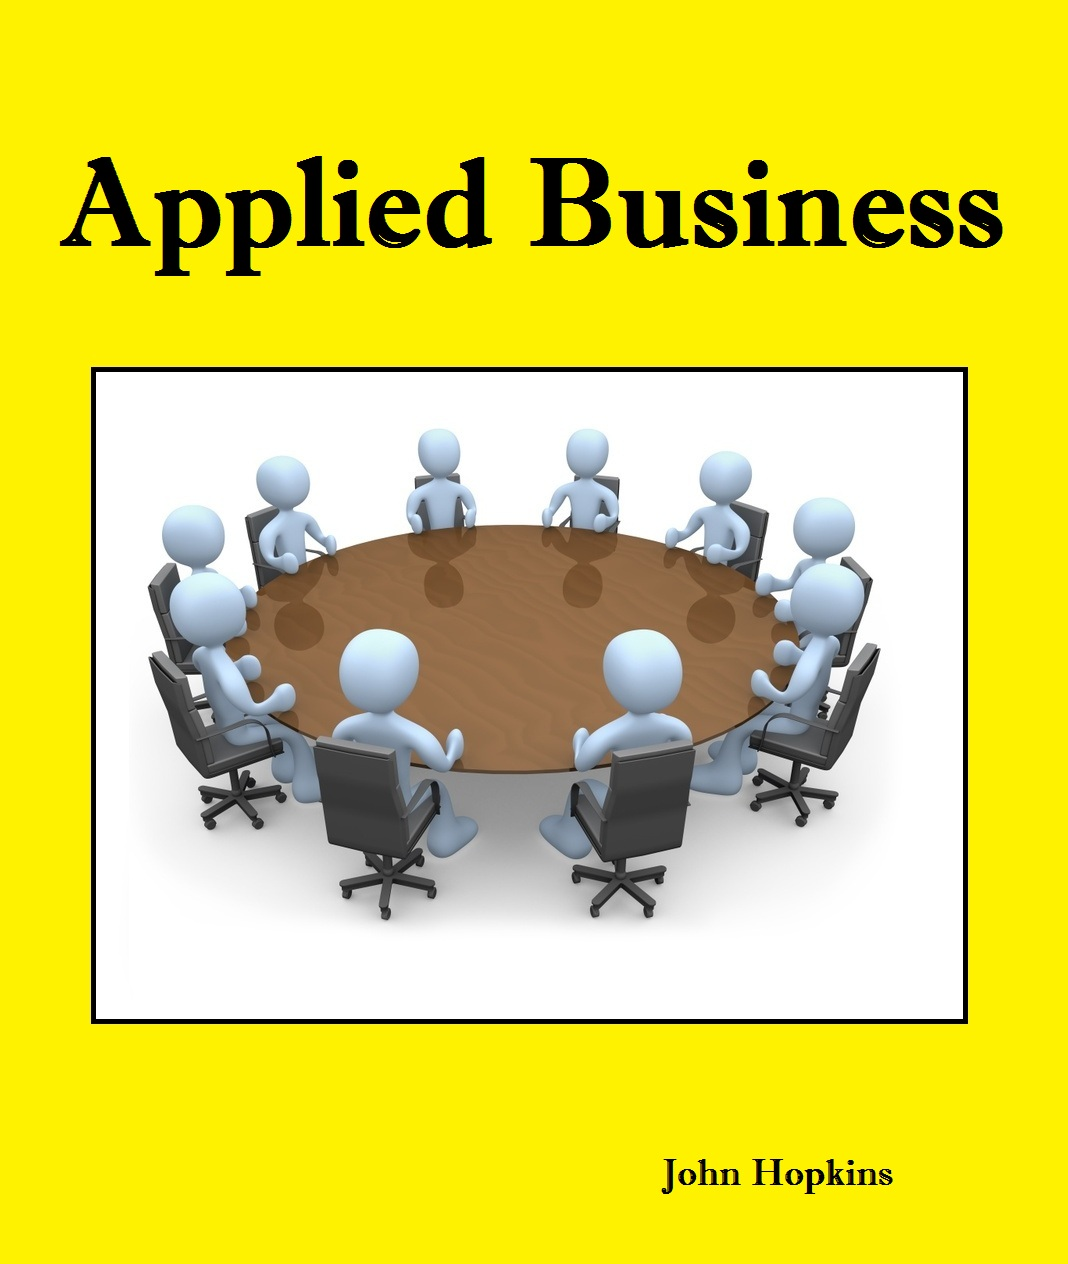 Applied Business